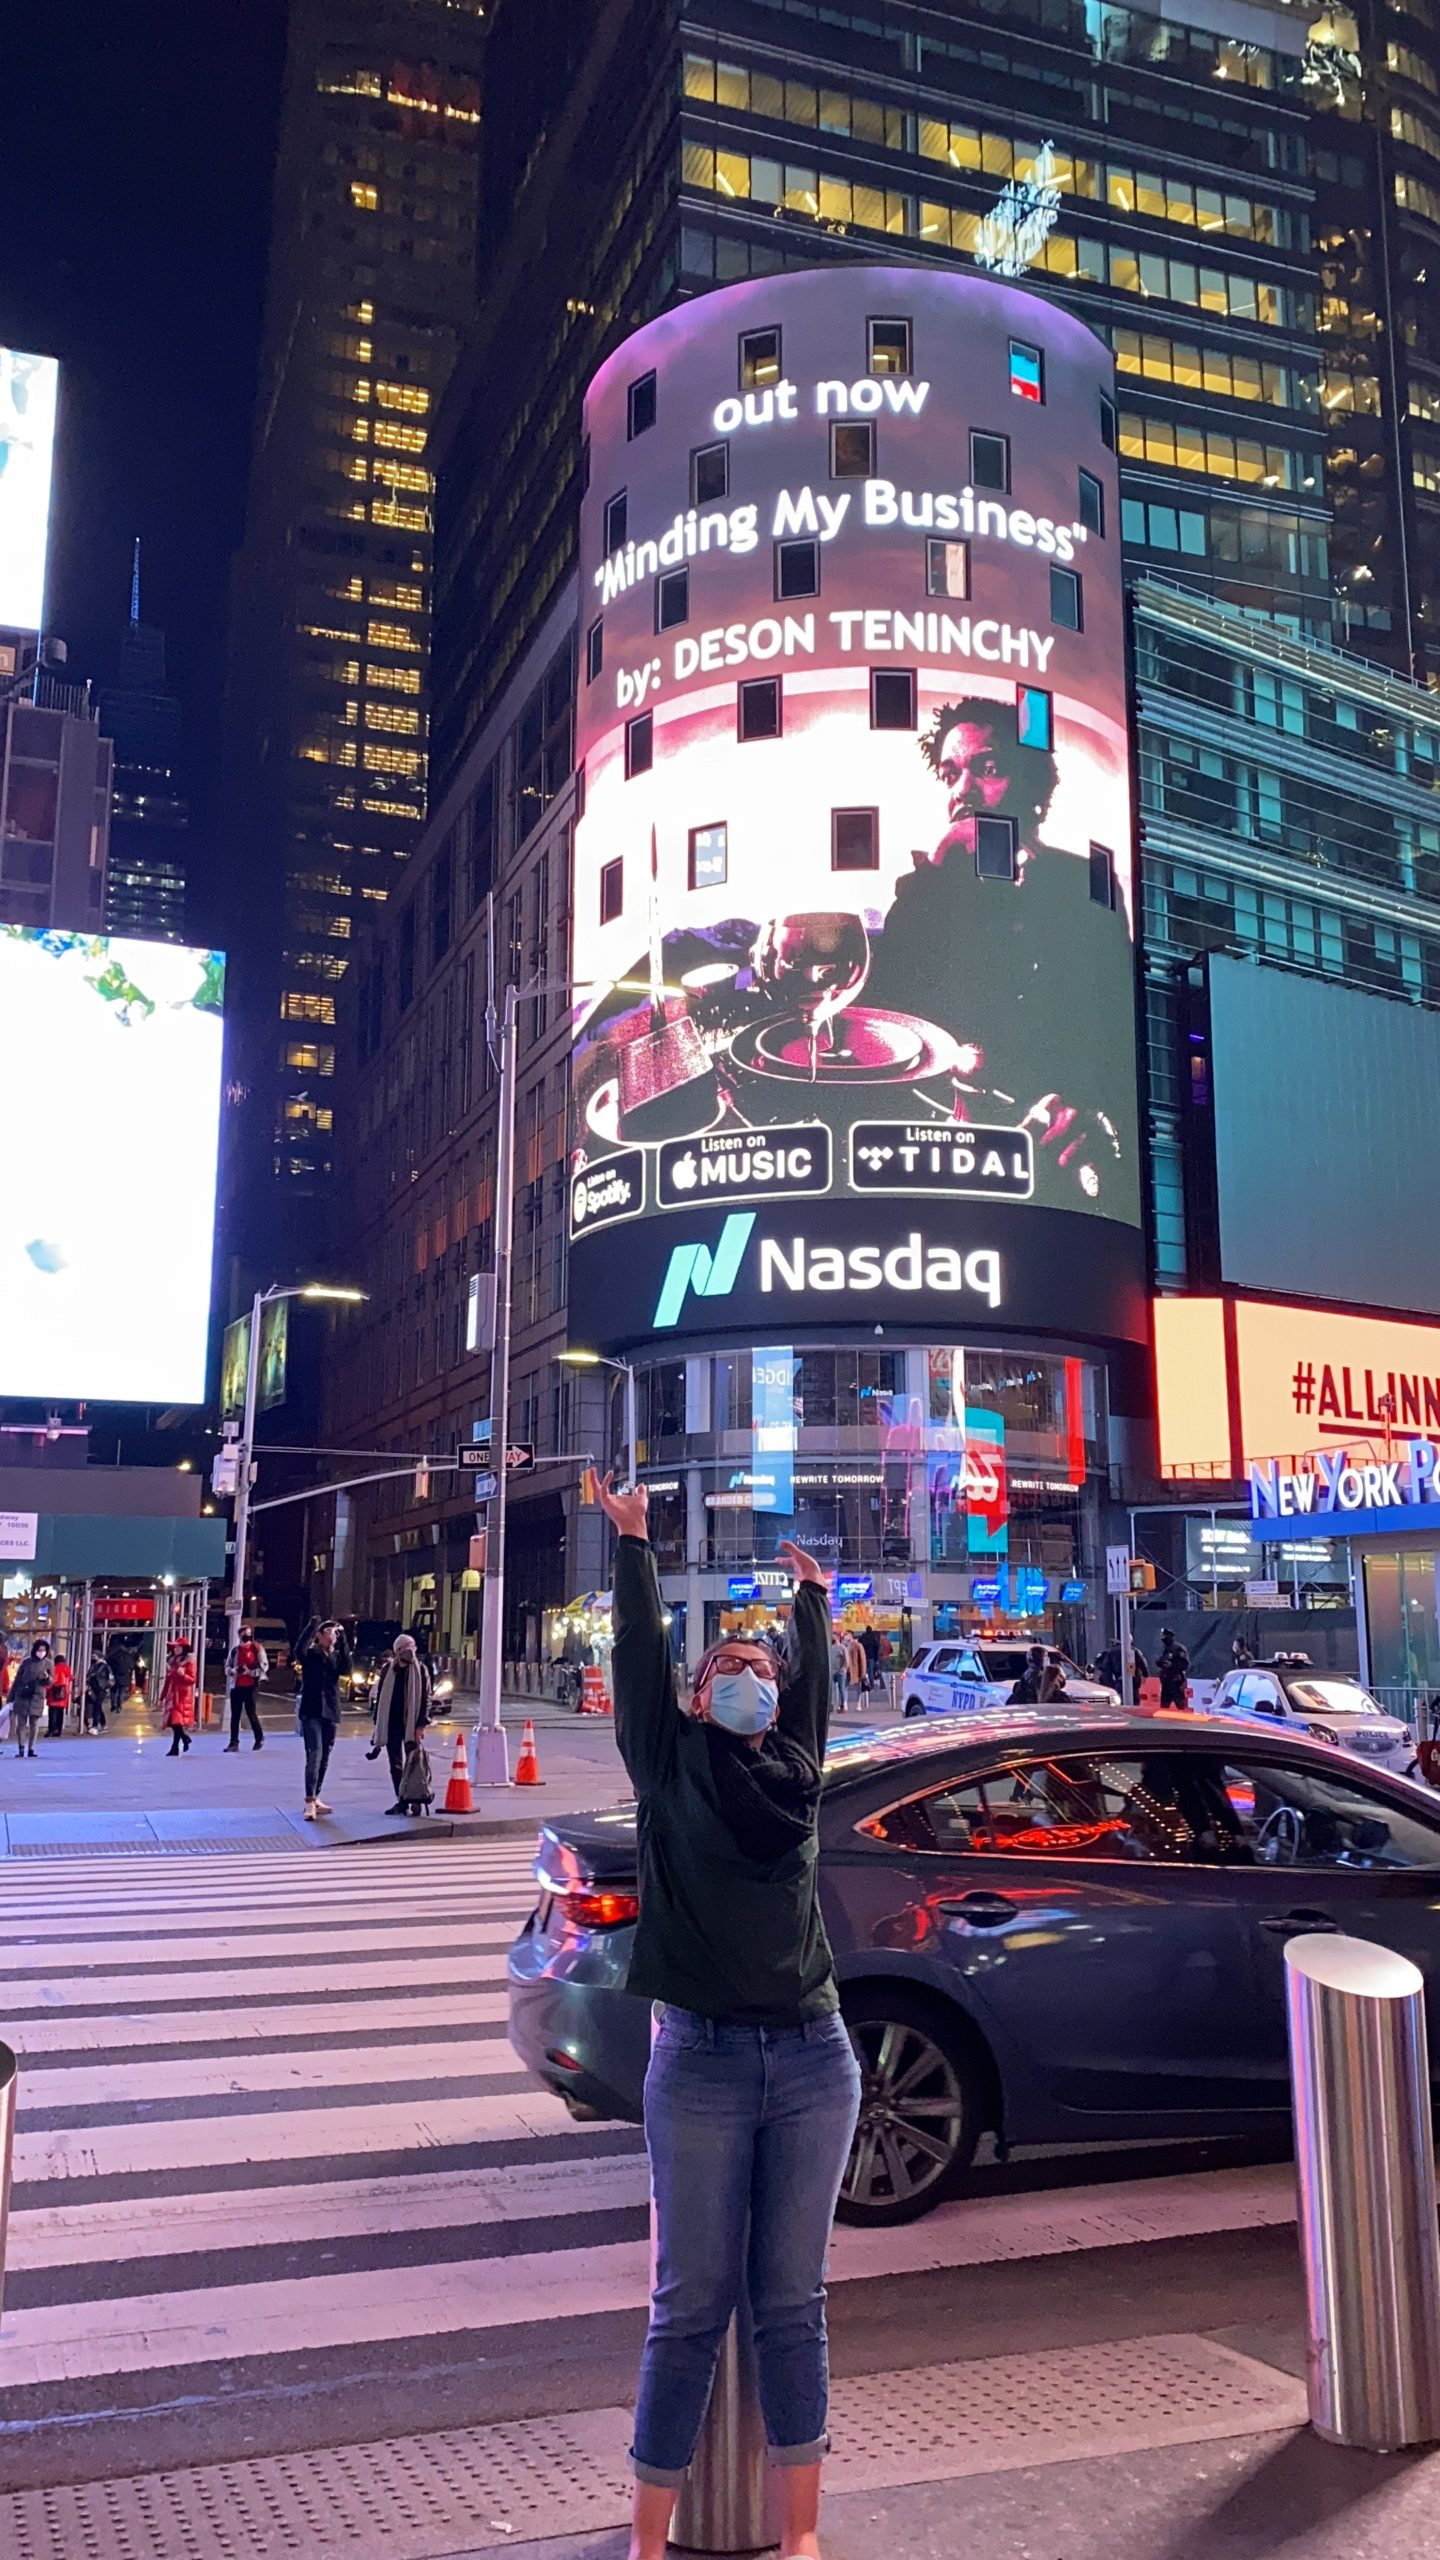 Ana Ramos, former County Prep student, Designs a Billboard Displayed in Times Square